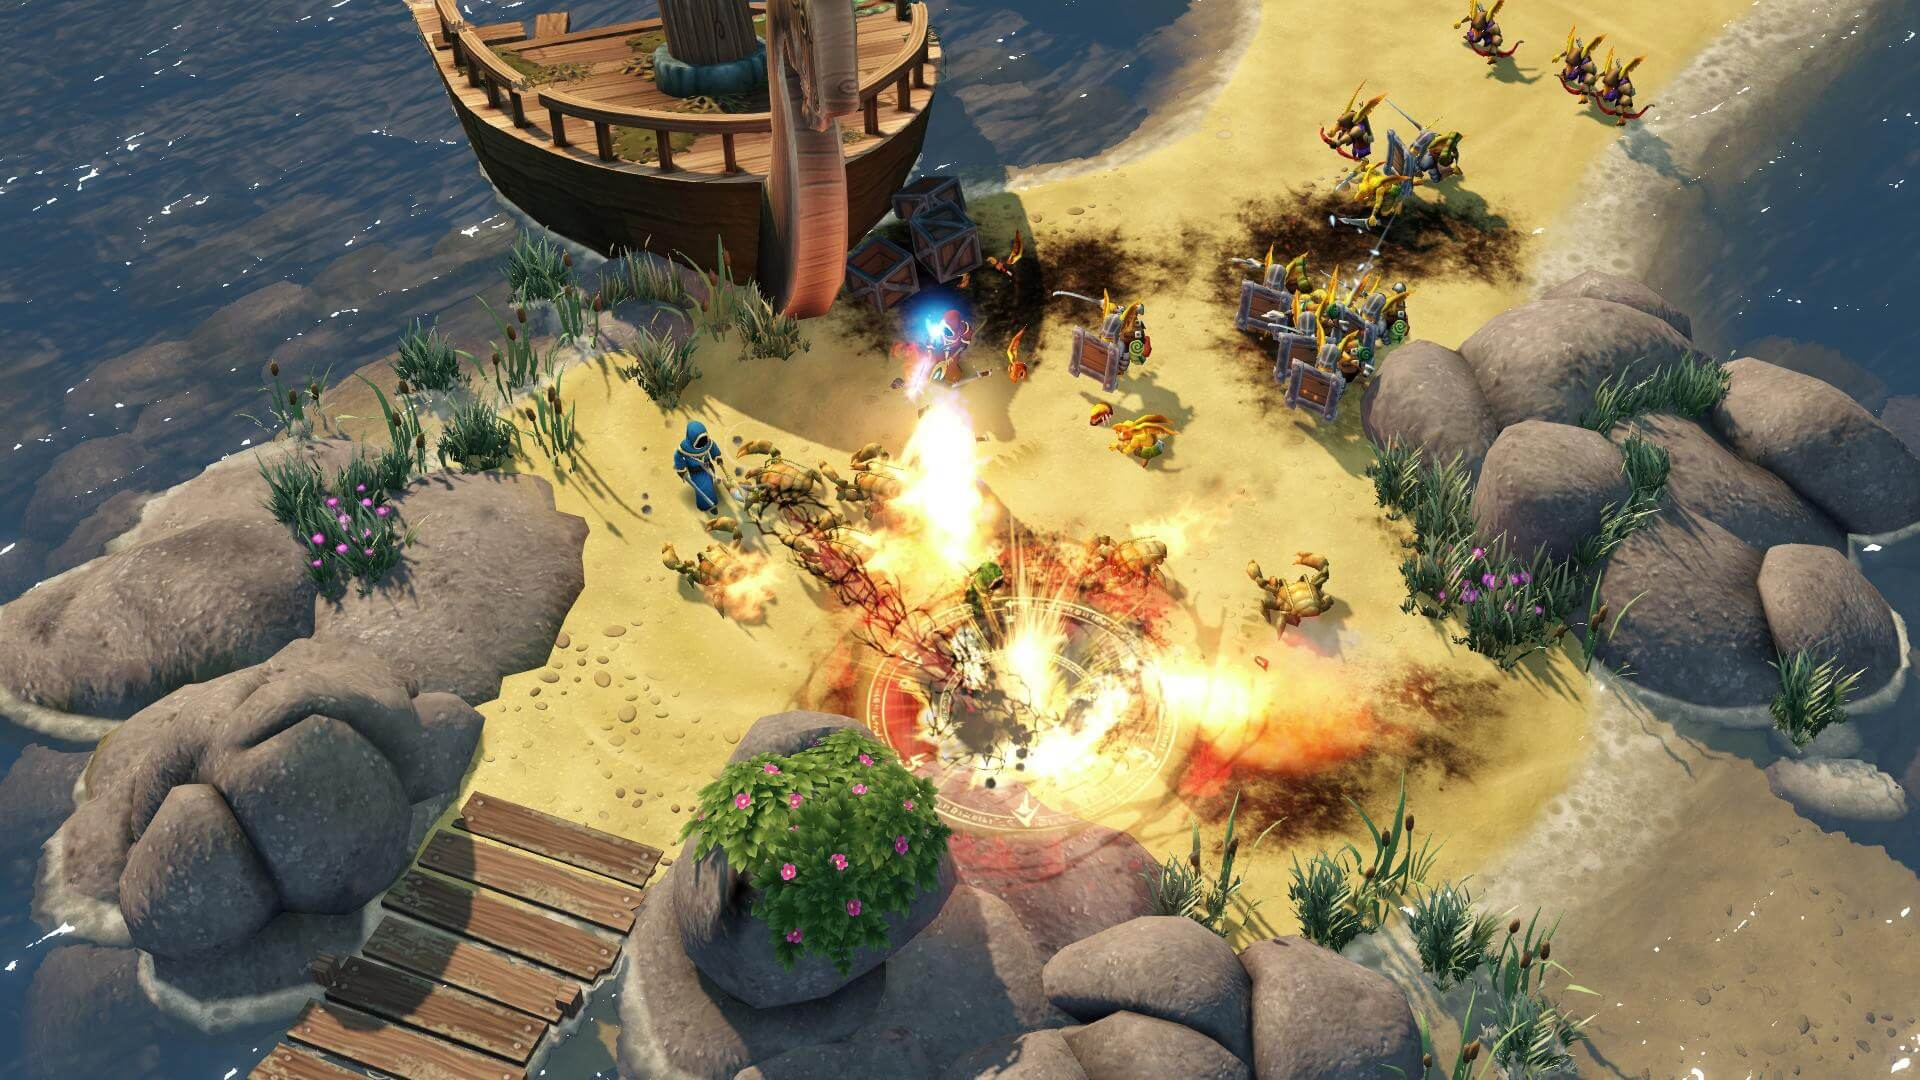 Magicka 2 for PS4, PC, PS5 Reviews - OpenCritic